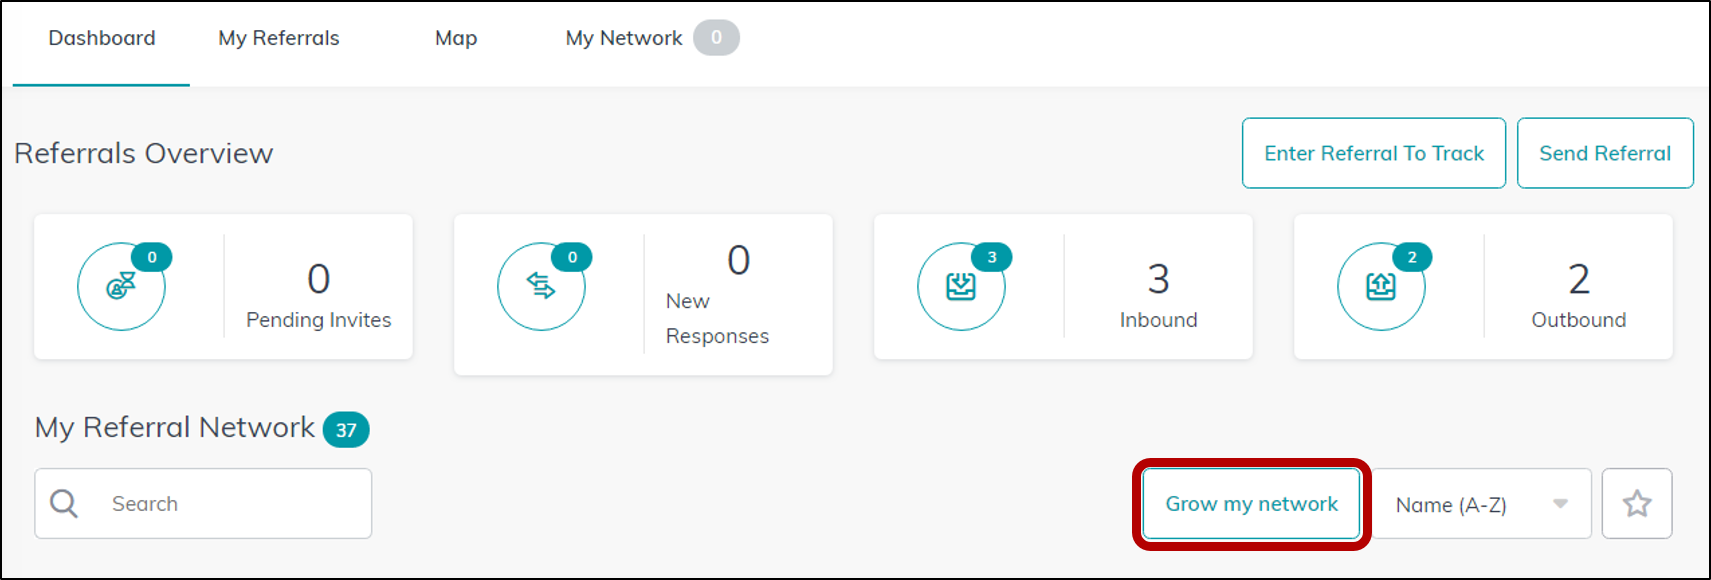 Referrals_grow_my_network.png